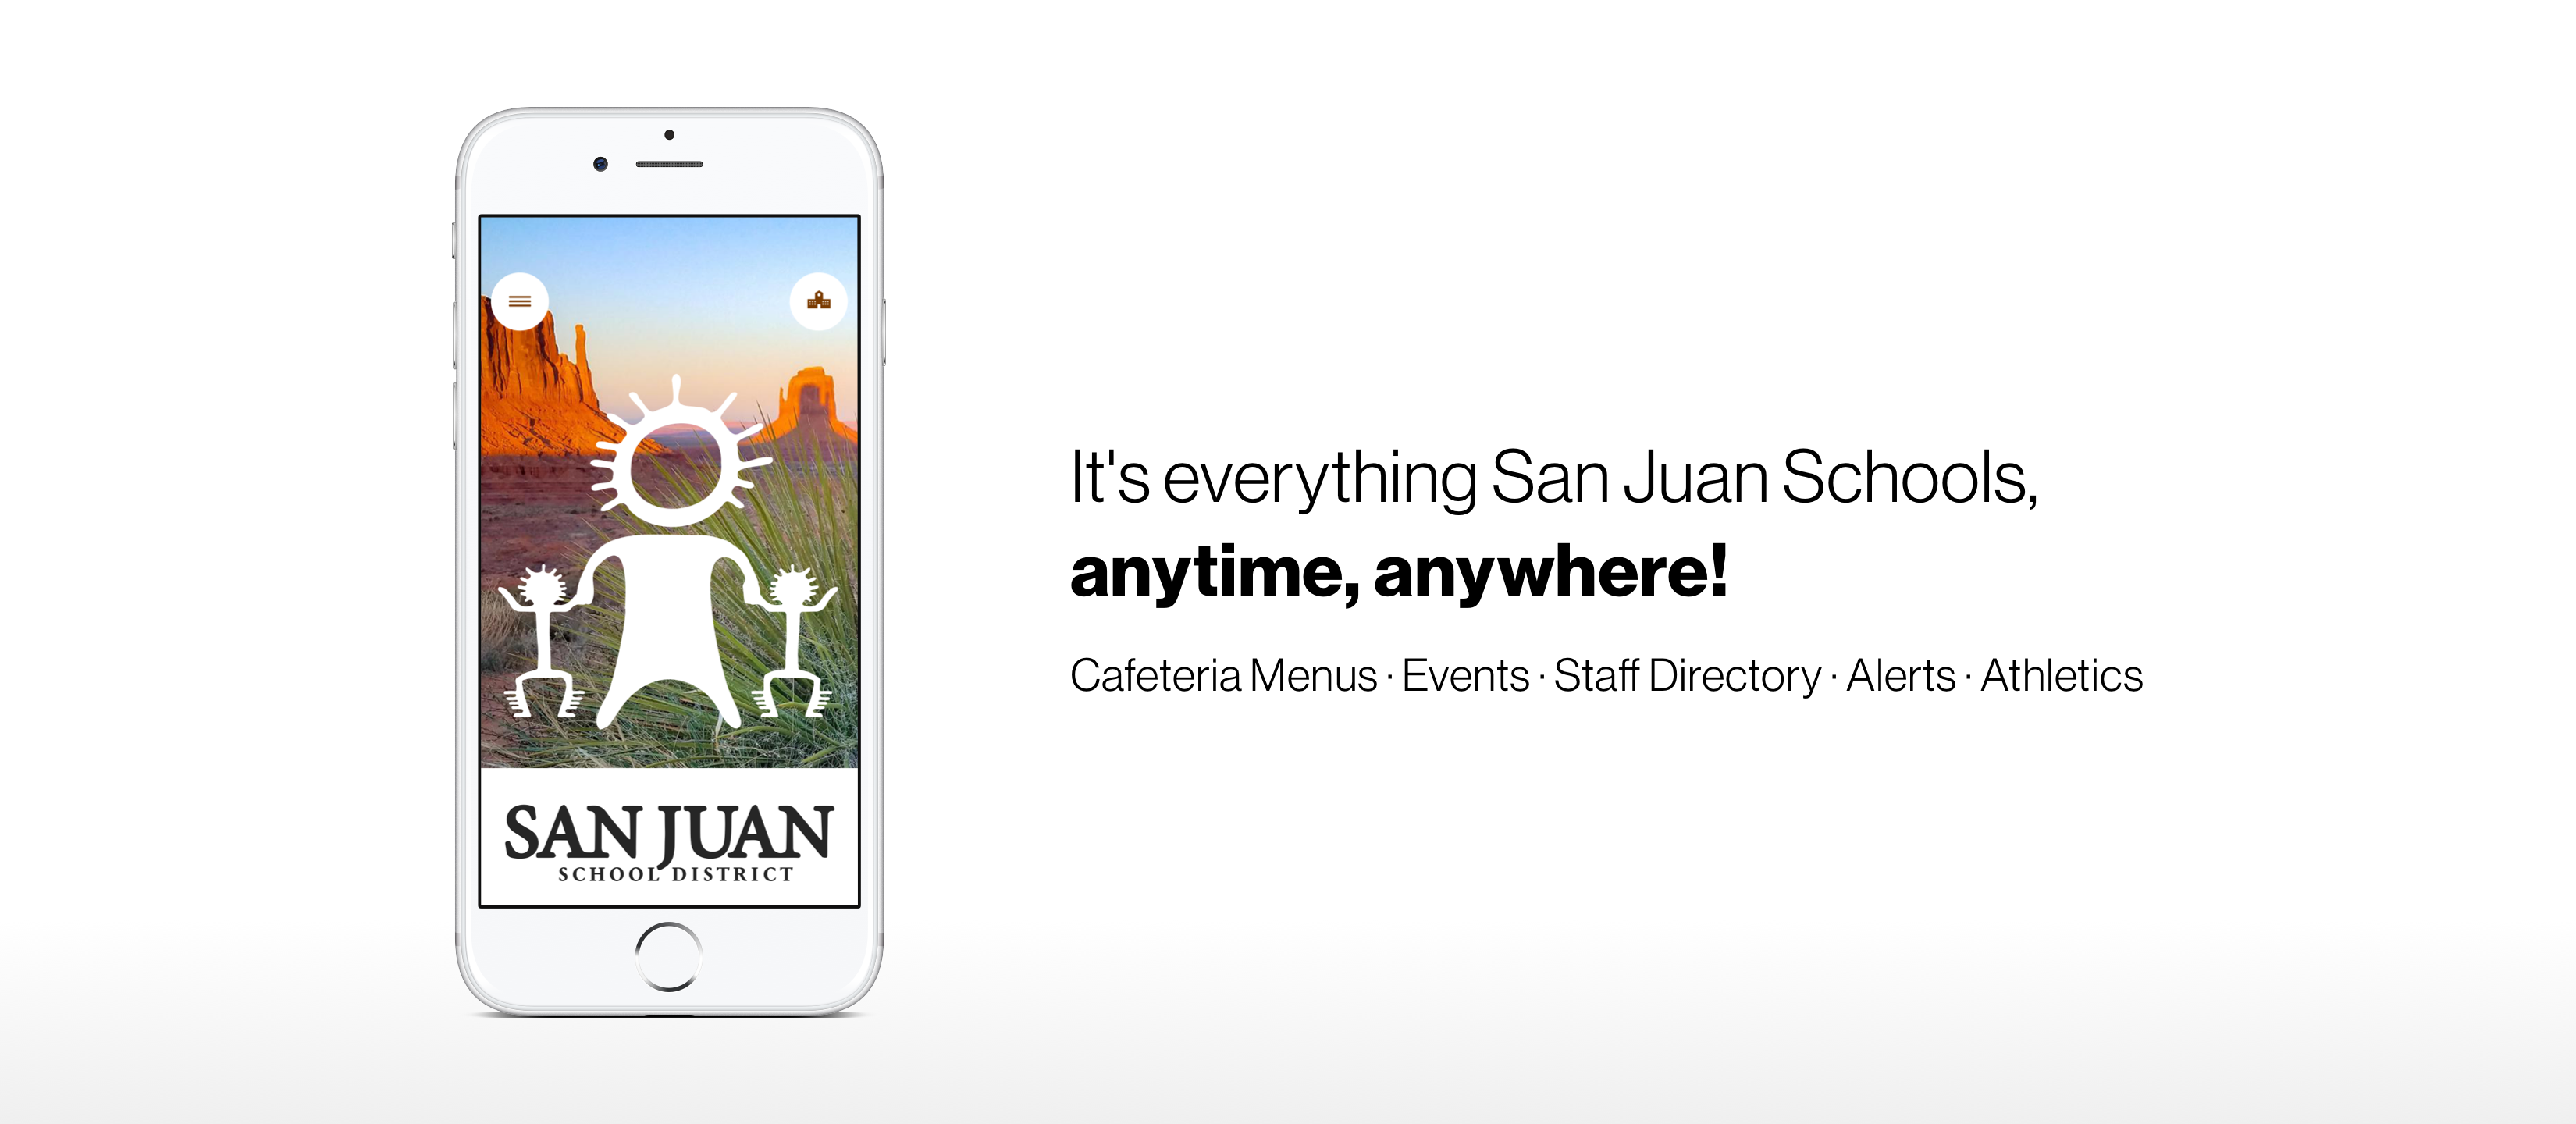 This picture announces a new school app on IOS and Google Play for San Juan School District.